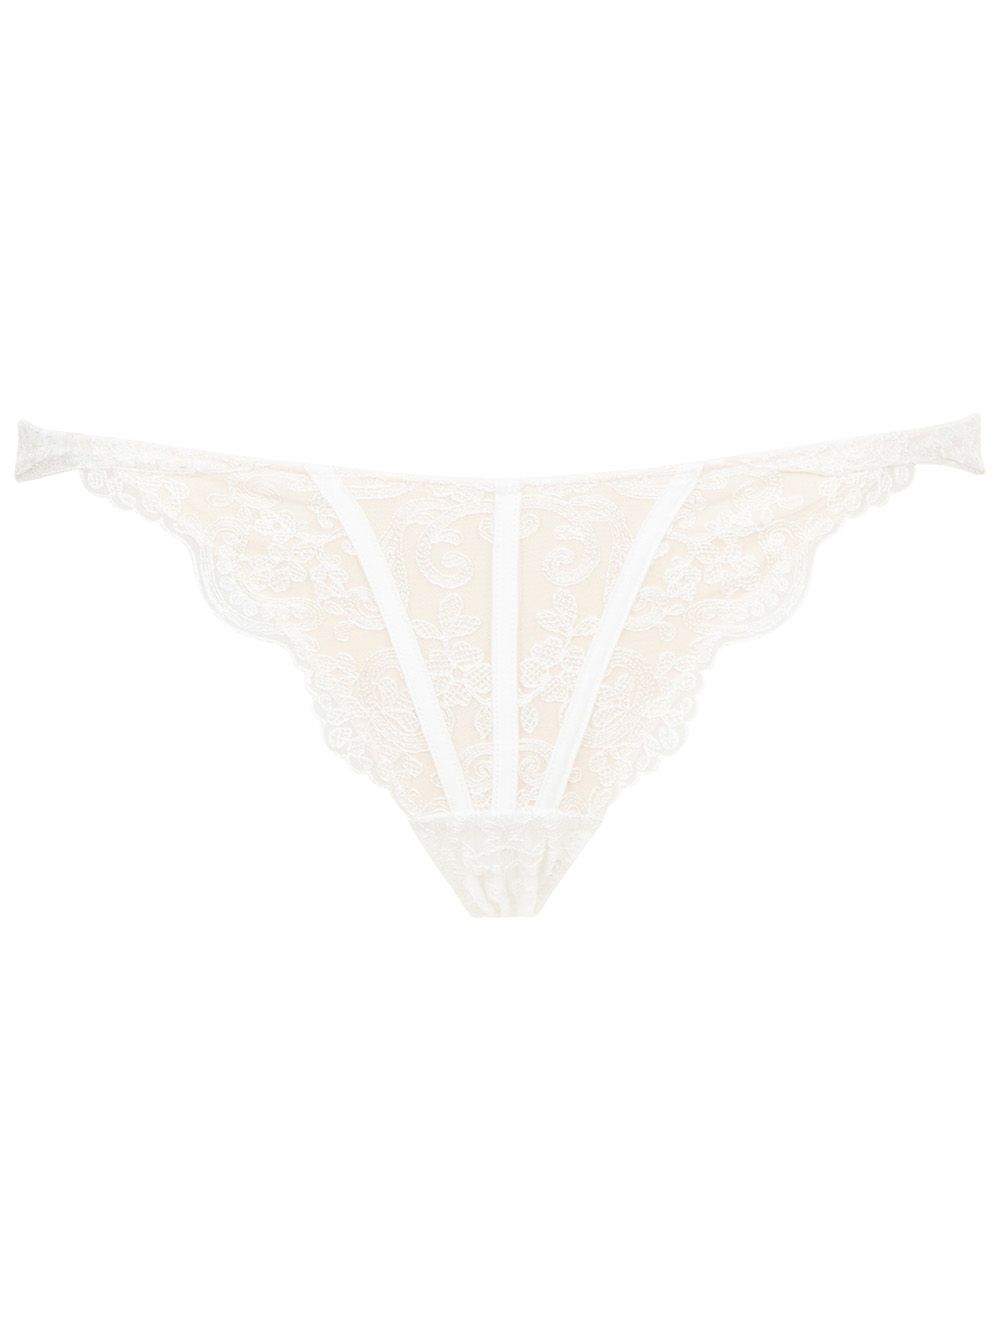 Ann Summers Penny brief Ivory